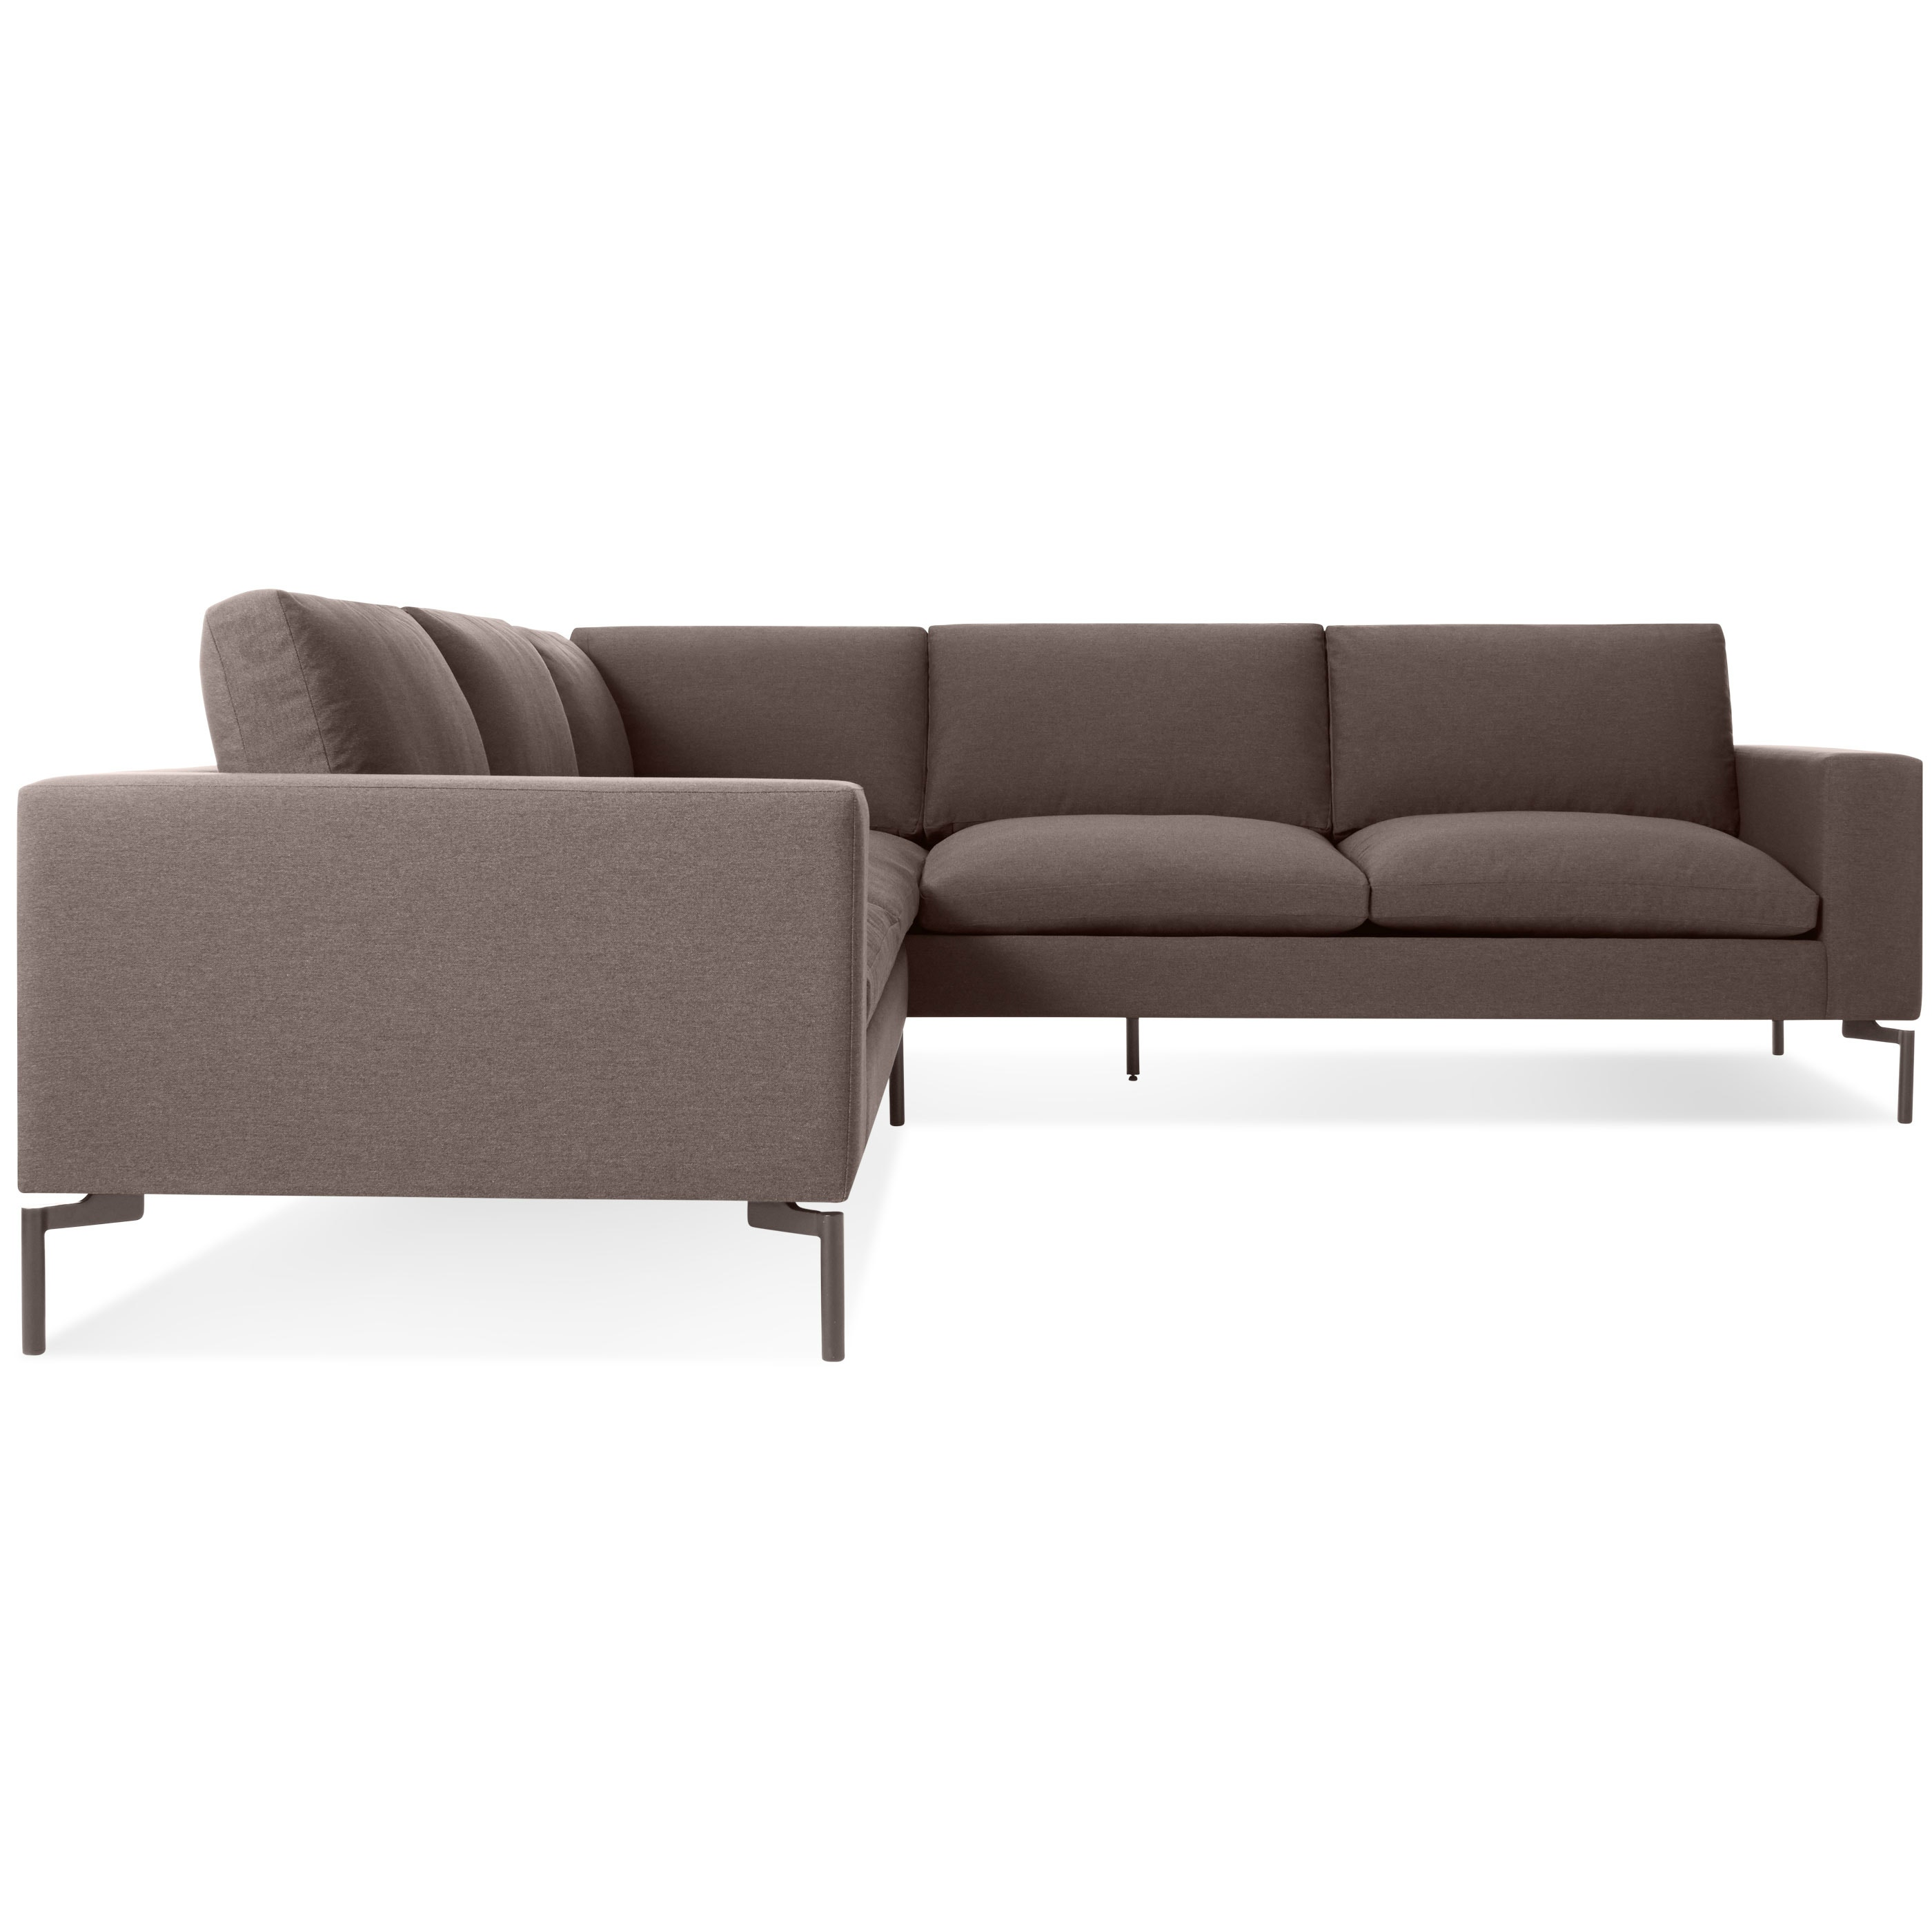 New Standard Small Sectional Sofa Modern Sofas